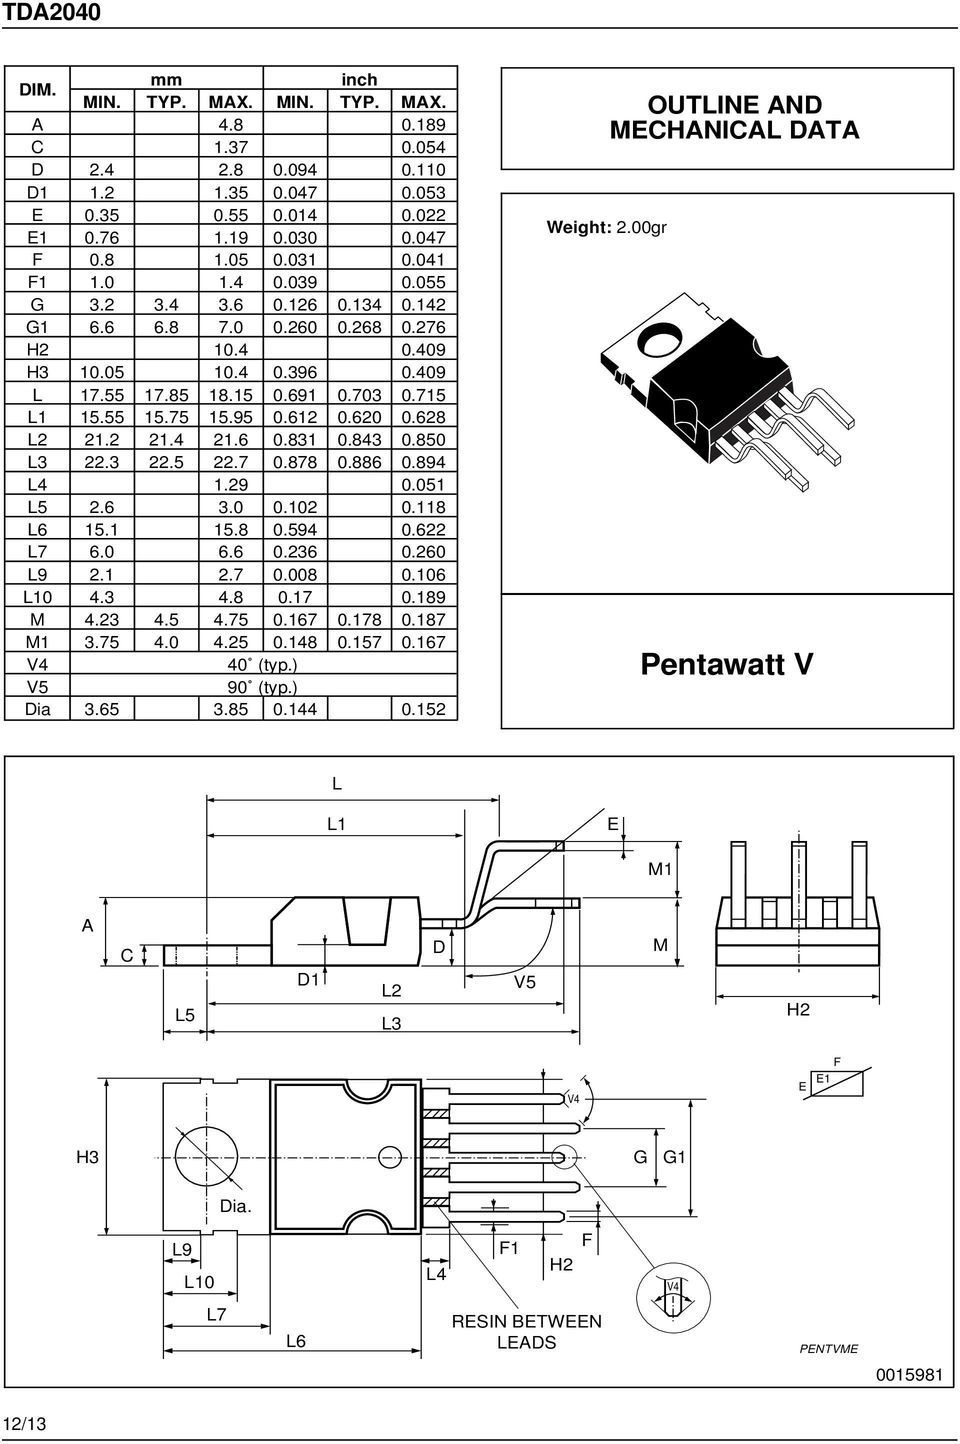 Tda W Hi Fi Audio Power Amplifier Pdf And Cheap Systems 32w Circuit Diagram 6 0831 0843 0850 L3 223 225 227 0878 0886 0894 L4 129 0051 L5 26